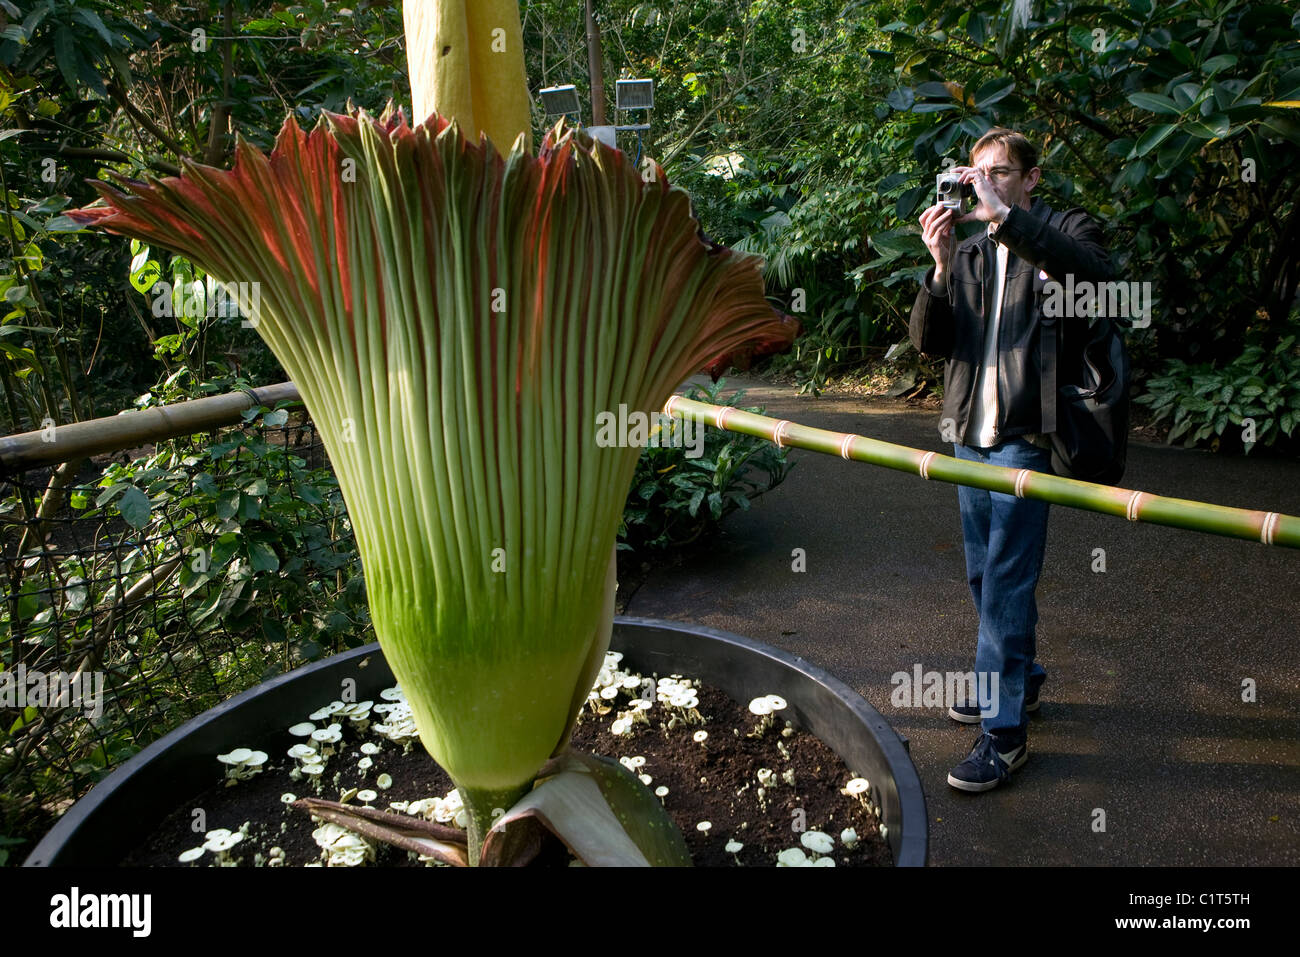 A visitor photographs Titan Arum plant in the Humid Tropics Biome at The Eden Project, Cornwall. - Stock Image